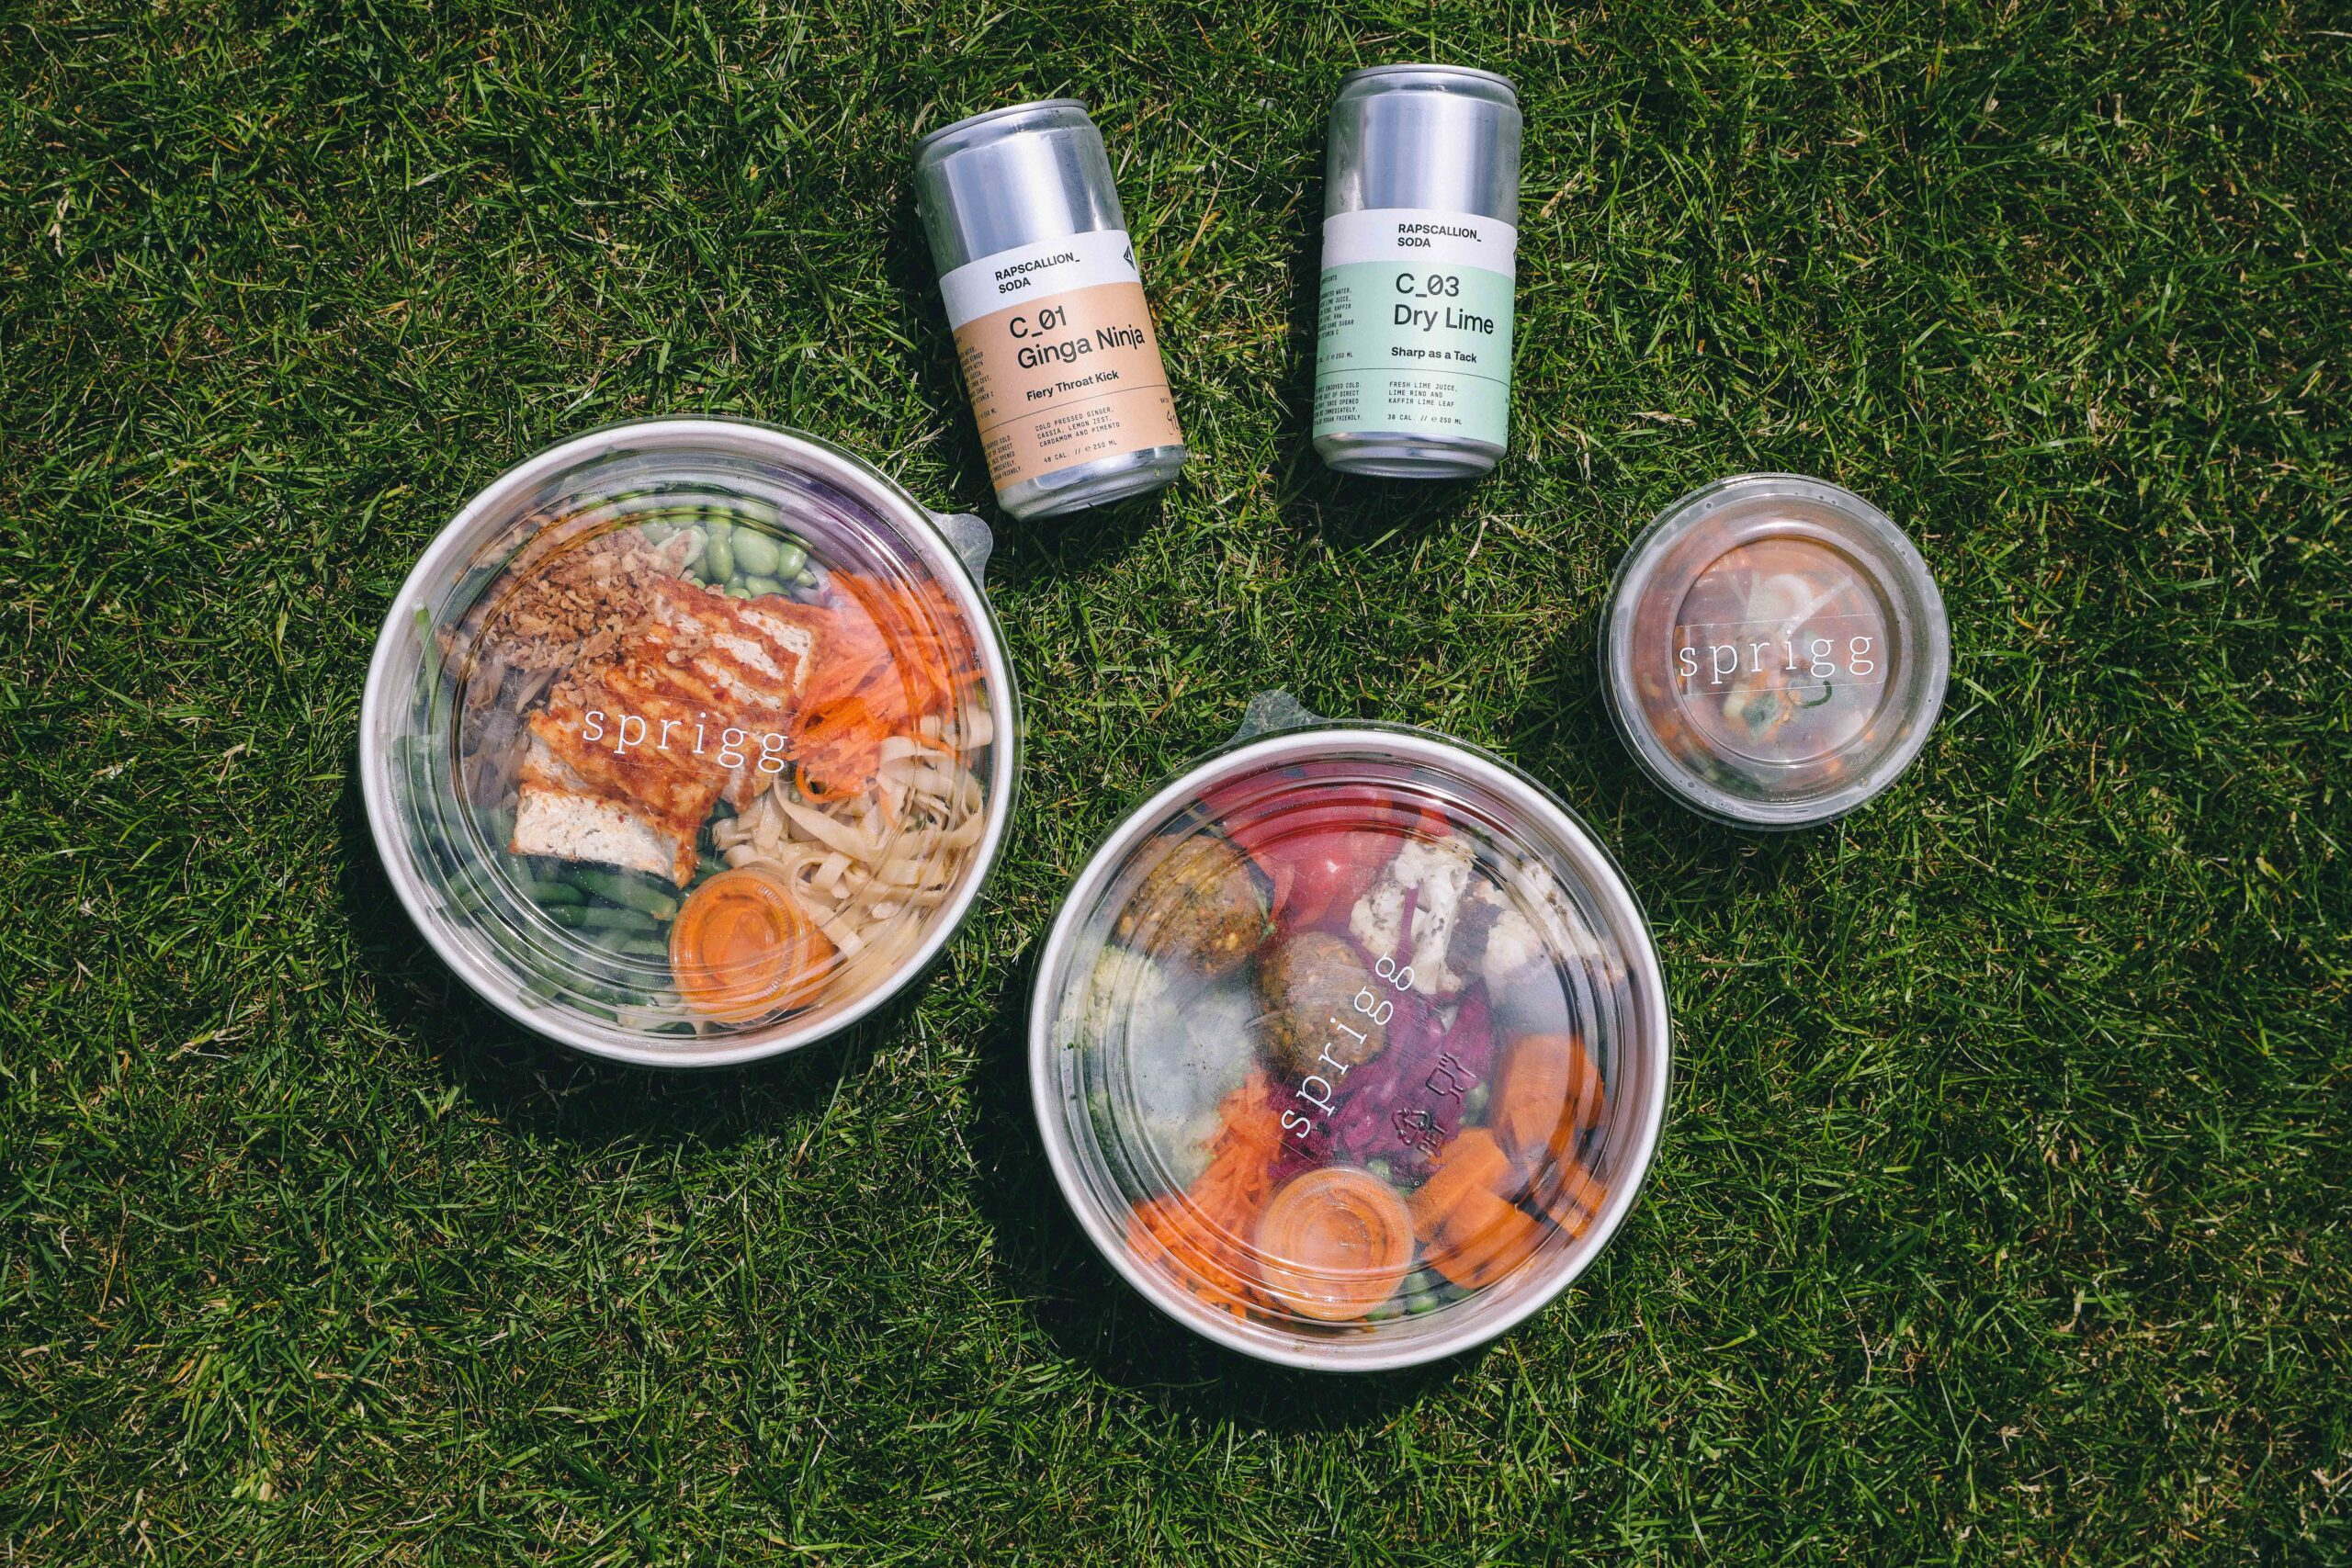 two lunch salad bowls with two cans of juice on grass